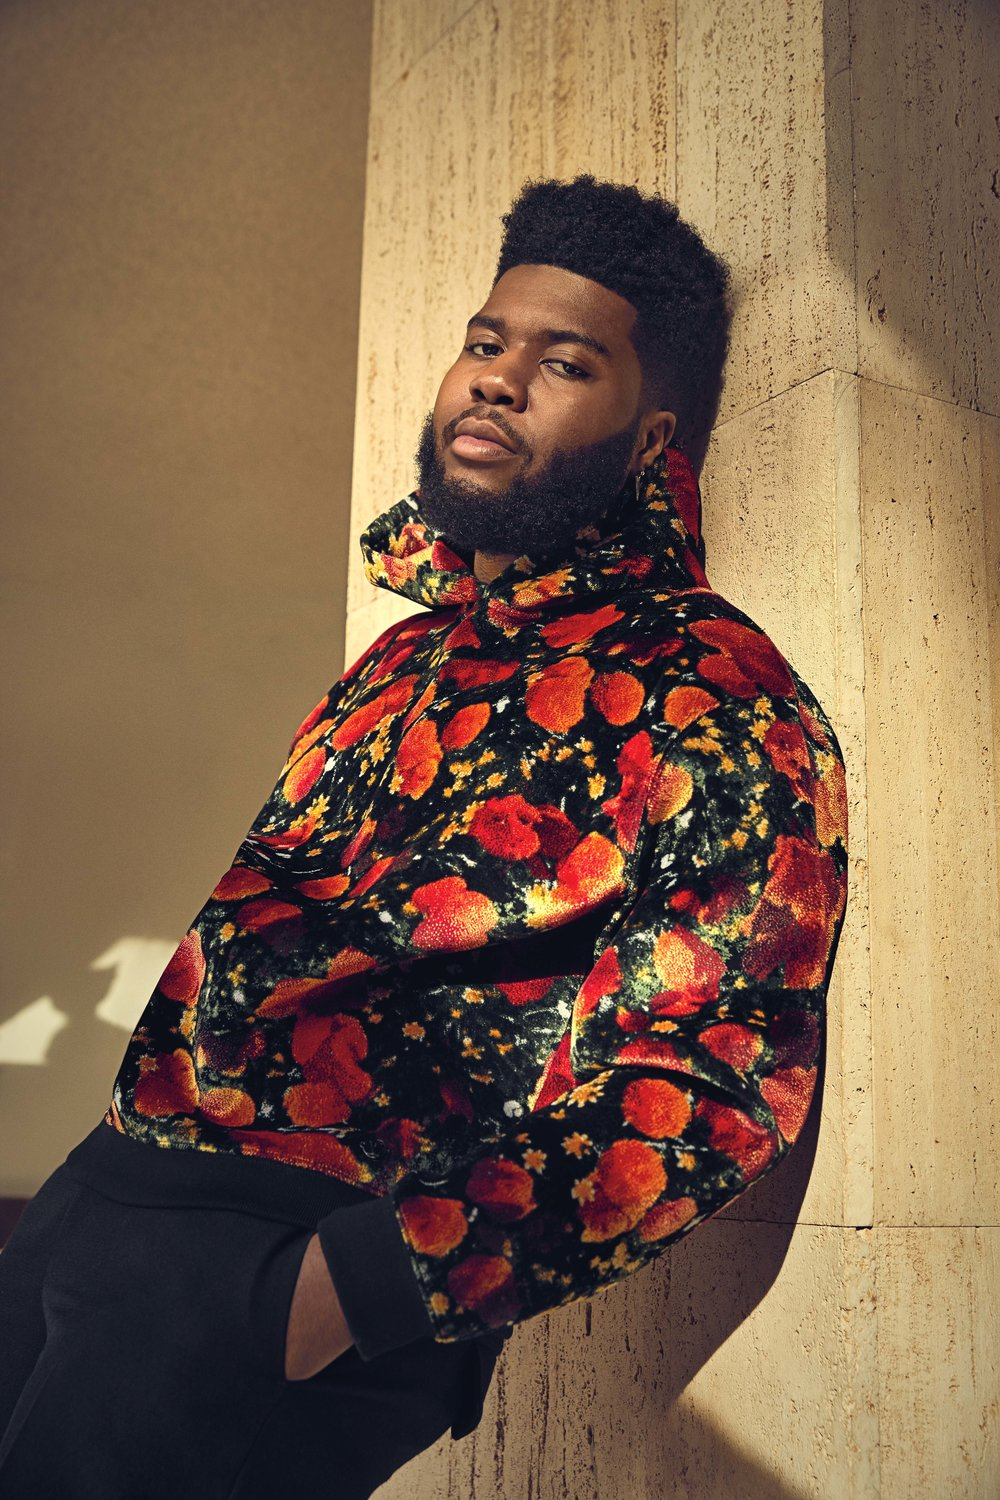 Khalid by Danielle Levitt for L'Officiel USA